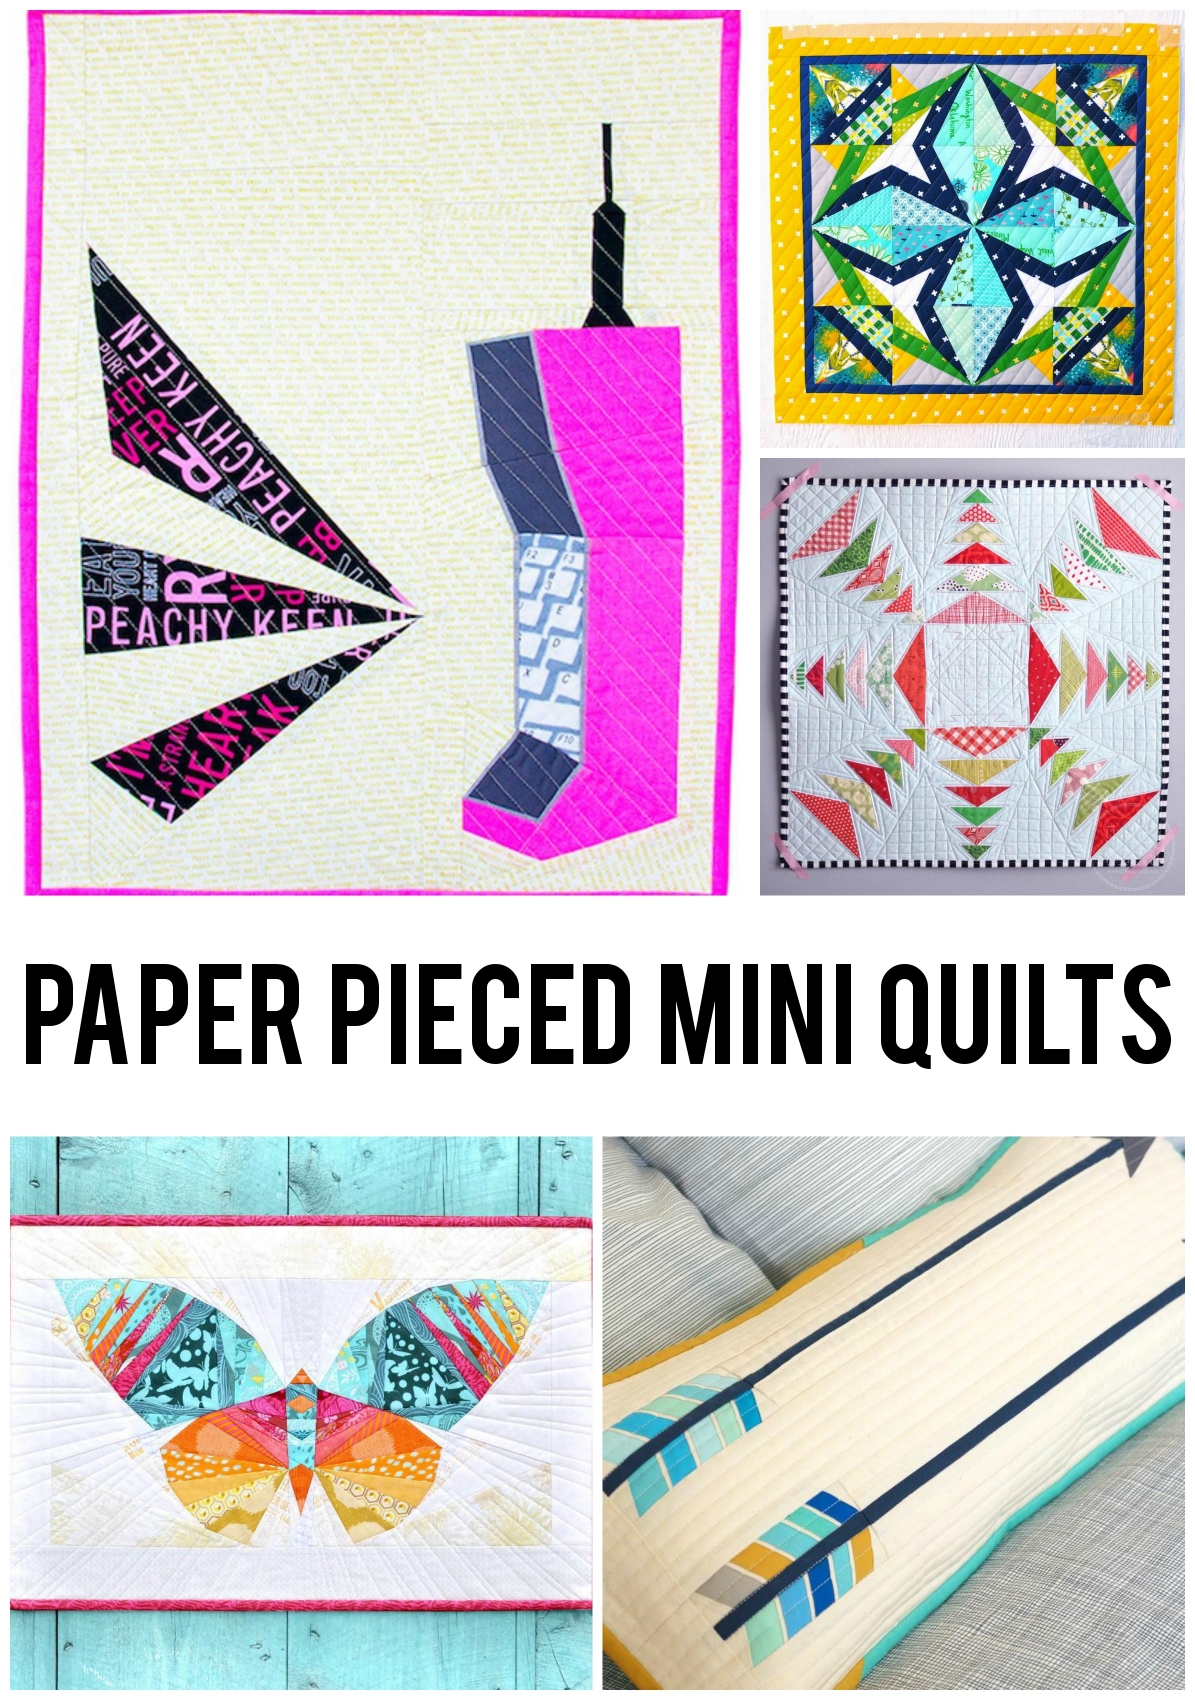 Paper Pieced Mini Quilts